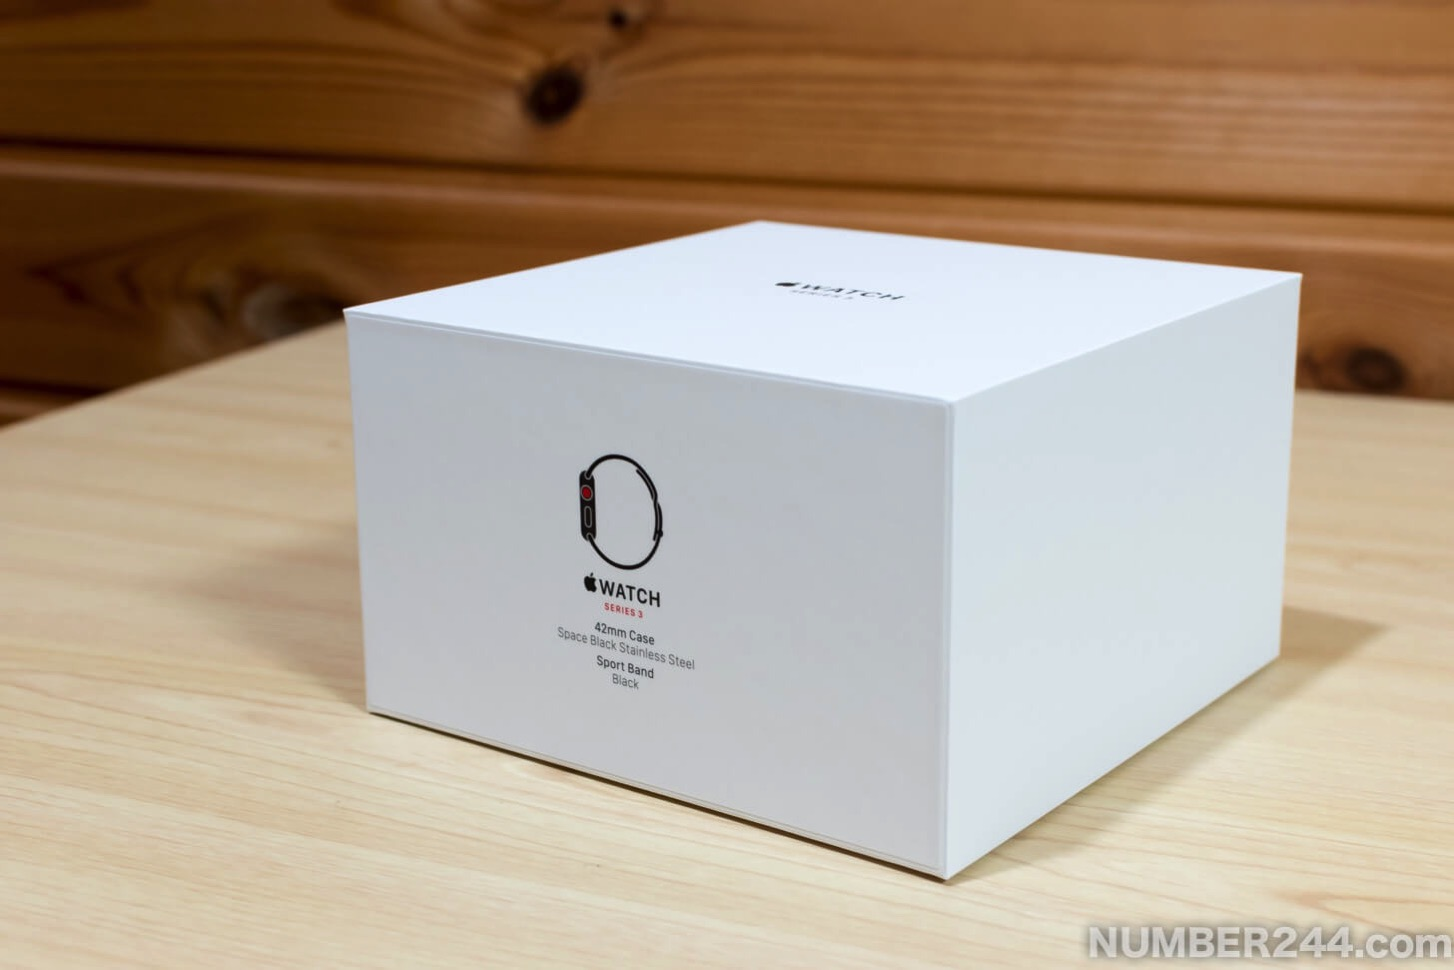 Apple Watch Series 3 unboxing7